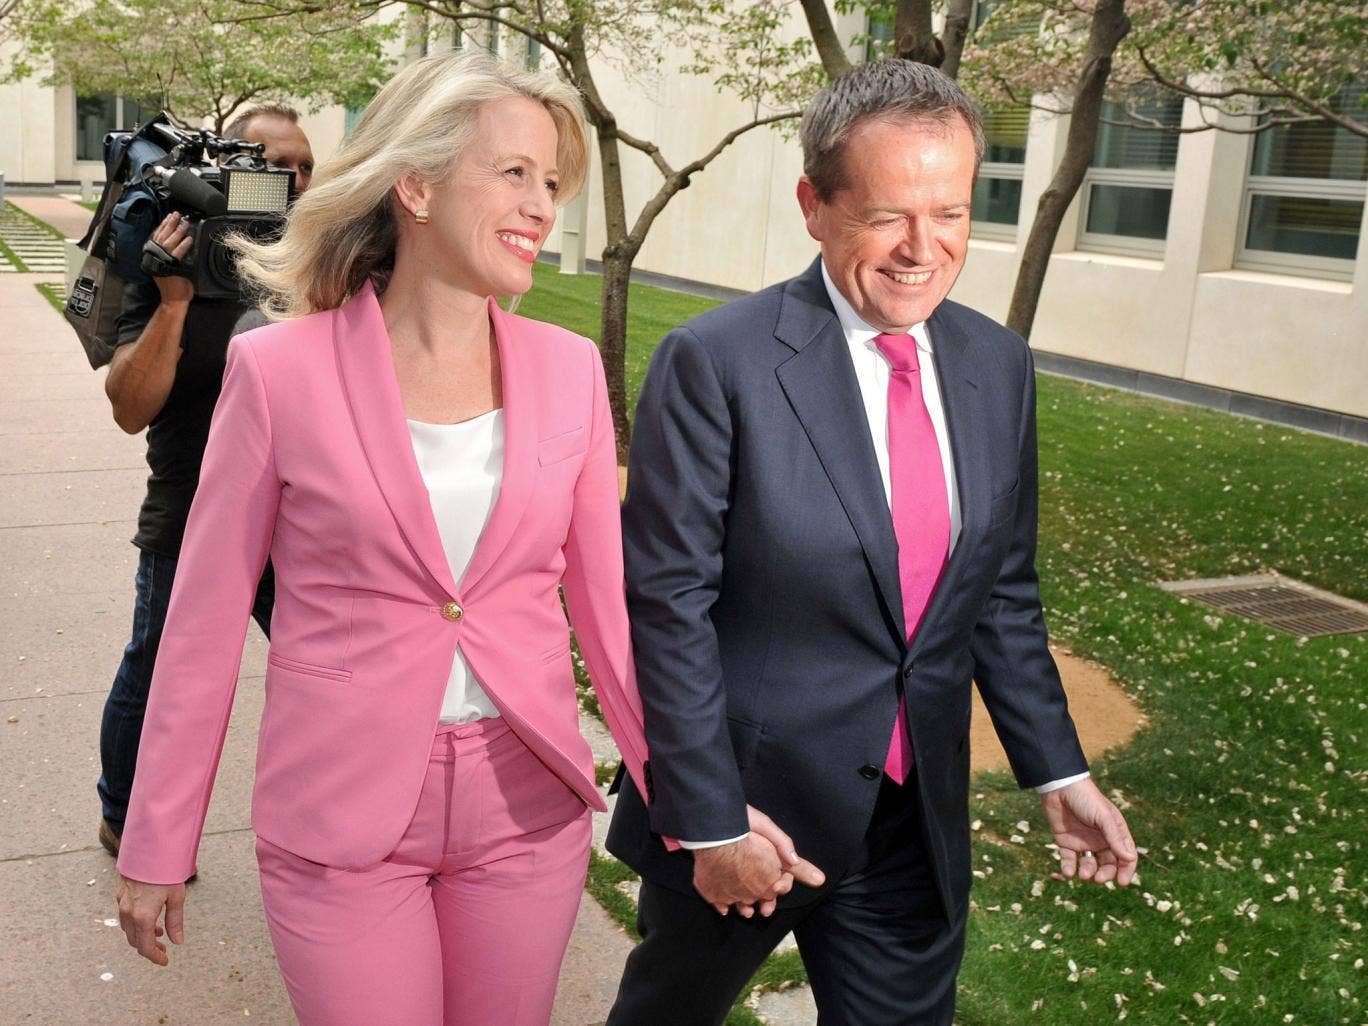 Bill Shorten and his wife, Chloe, after the election